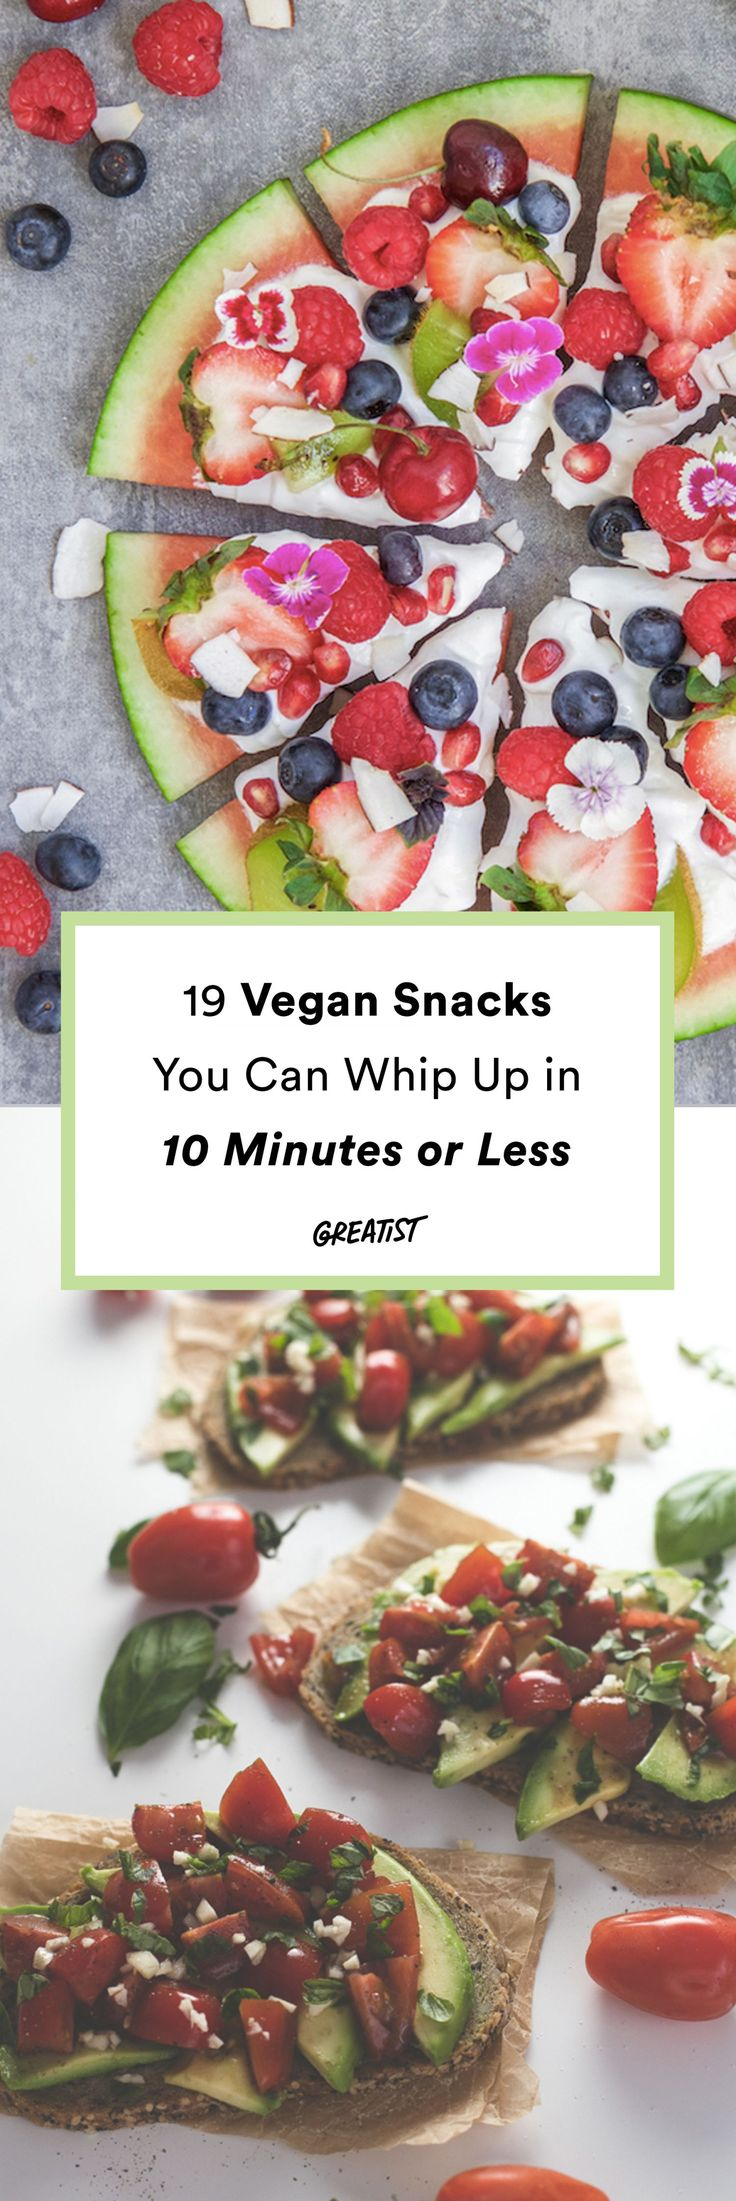 Because nobody can wait longer than that when they're hangry.  #greatist https://greatist.com/eat/vegan-snacks-to-make-in-10-minutes-or-less